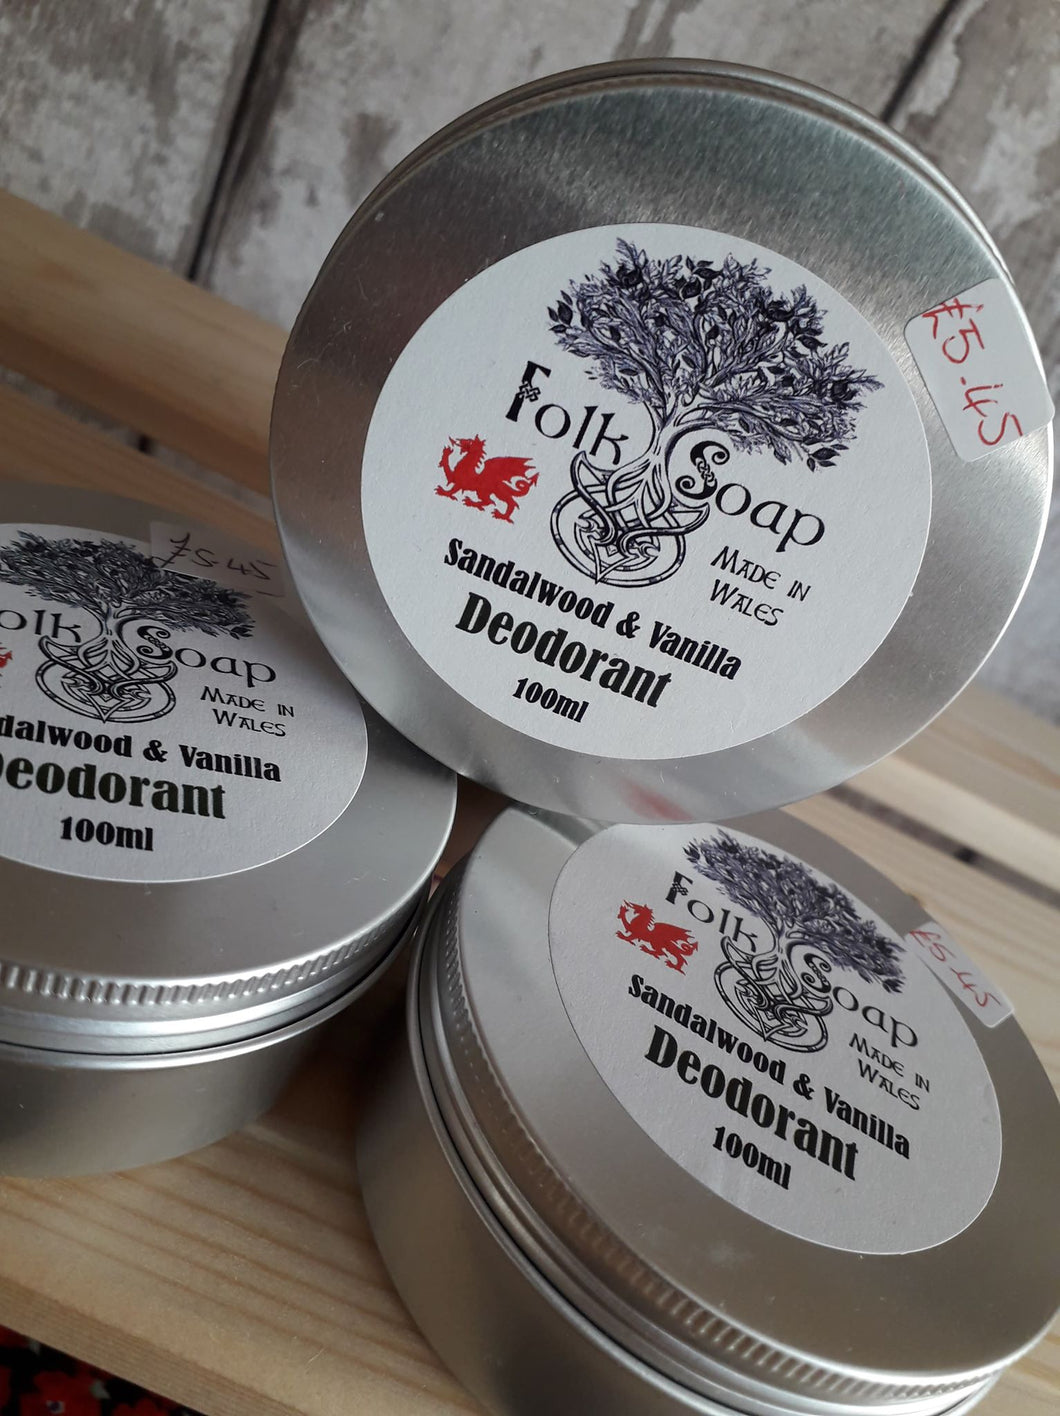 Handmade Deodorant in Tin by Folk Soap